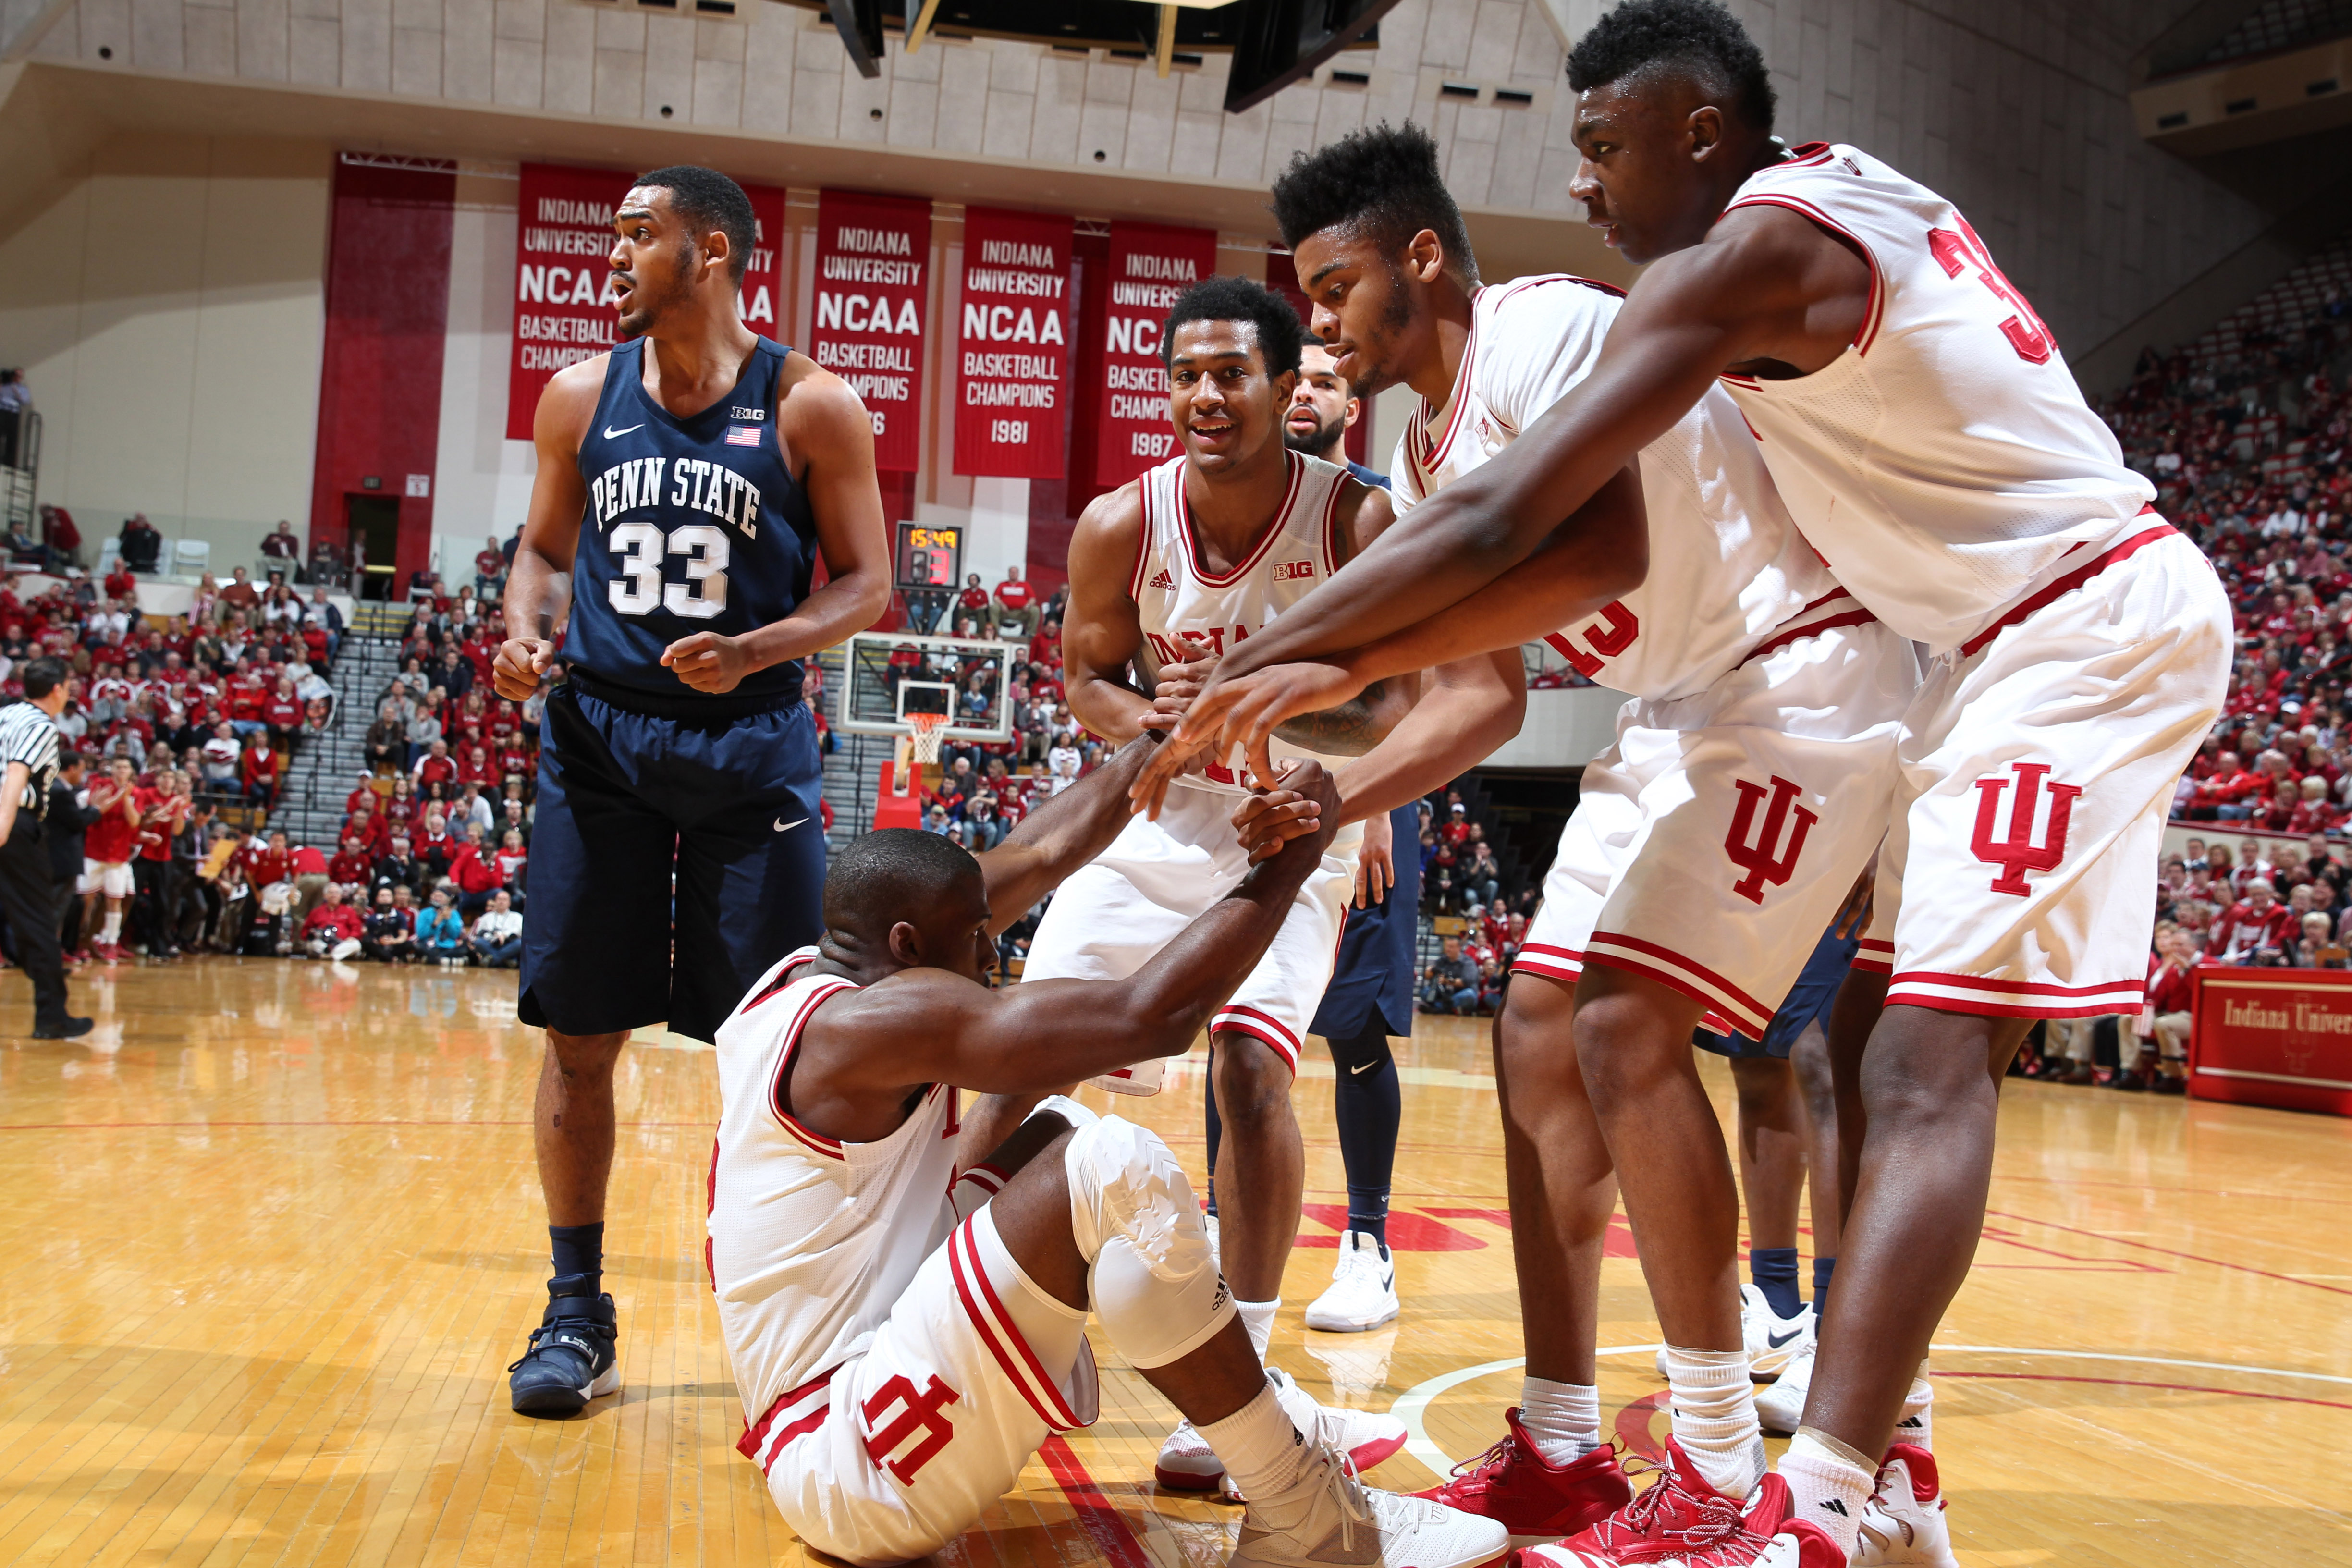 Feb 1, 2017; Bloomington, IN, USA; Indiana Hoosiers guard Josh Newkirk (2) gets helped up off the floor from center Thomas Bryant (31) and forward Juwan Morgan (13) against the Penn State Nittany Lions at Assembly Hall. Mandatory Credit: Brian Spurlock-USA TODAY Sports